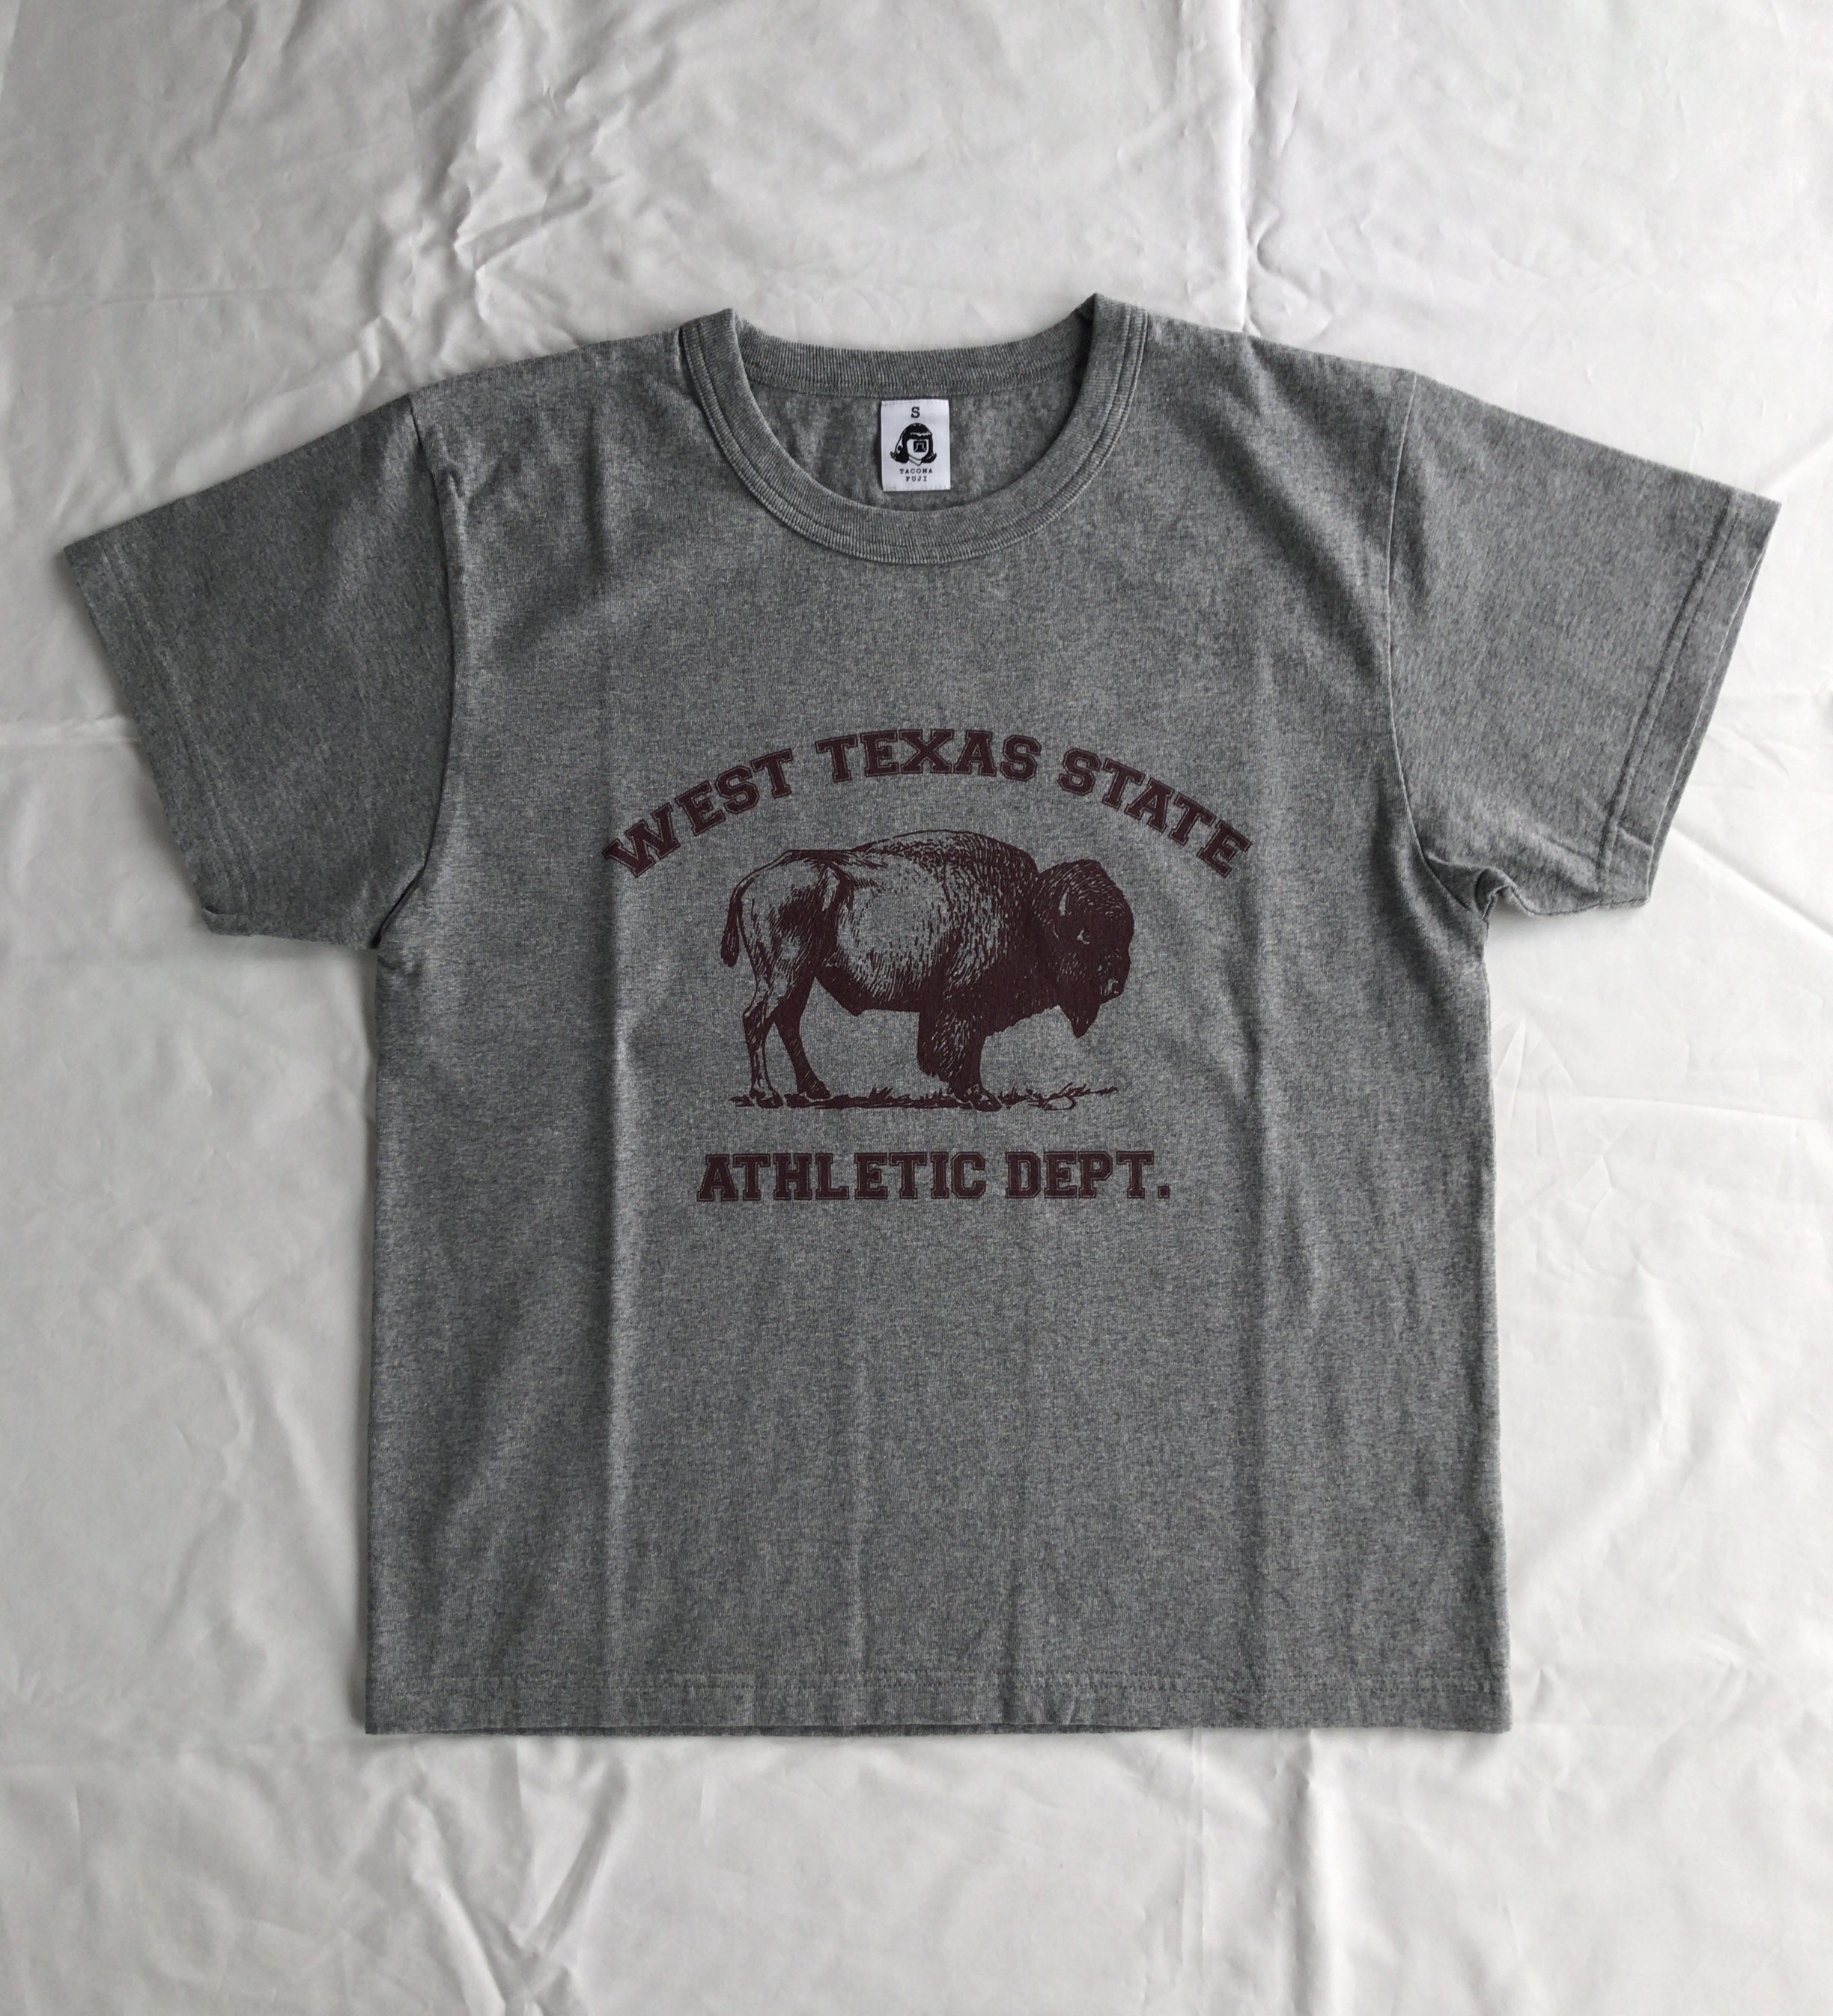 TACOMA FUJI RECORDS  WEST TEXAS STATE ATHLETIC DEPT.  designed by MATT LEINES  HEATHER GRAY